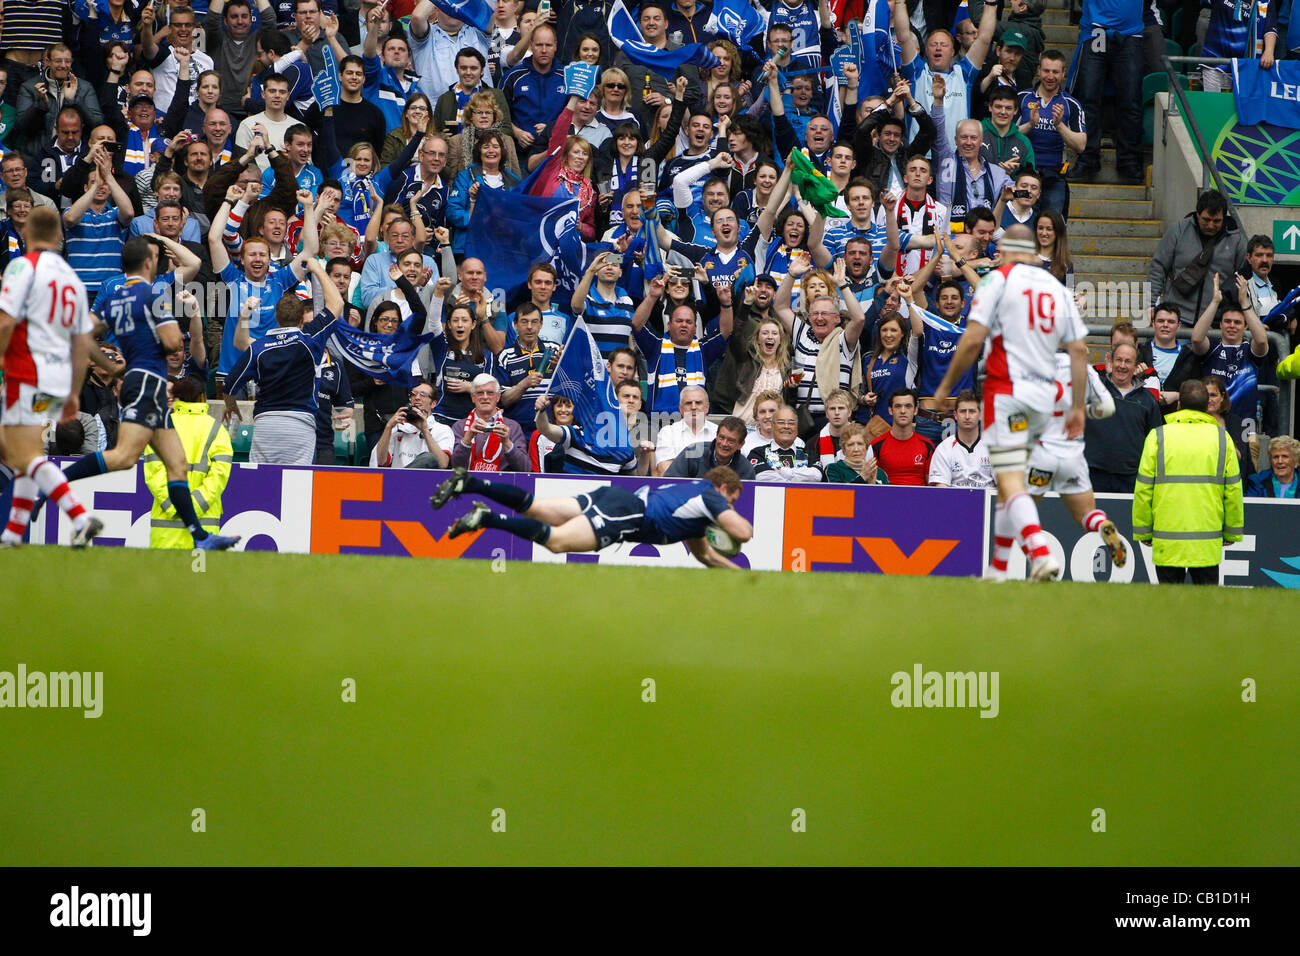 19.05.2012 Twickenham, London. Rugby Union. Leinster Rugby v Ulster Rugby. - Stock Image